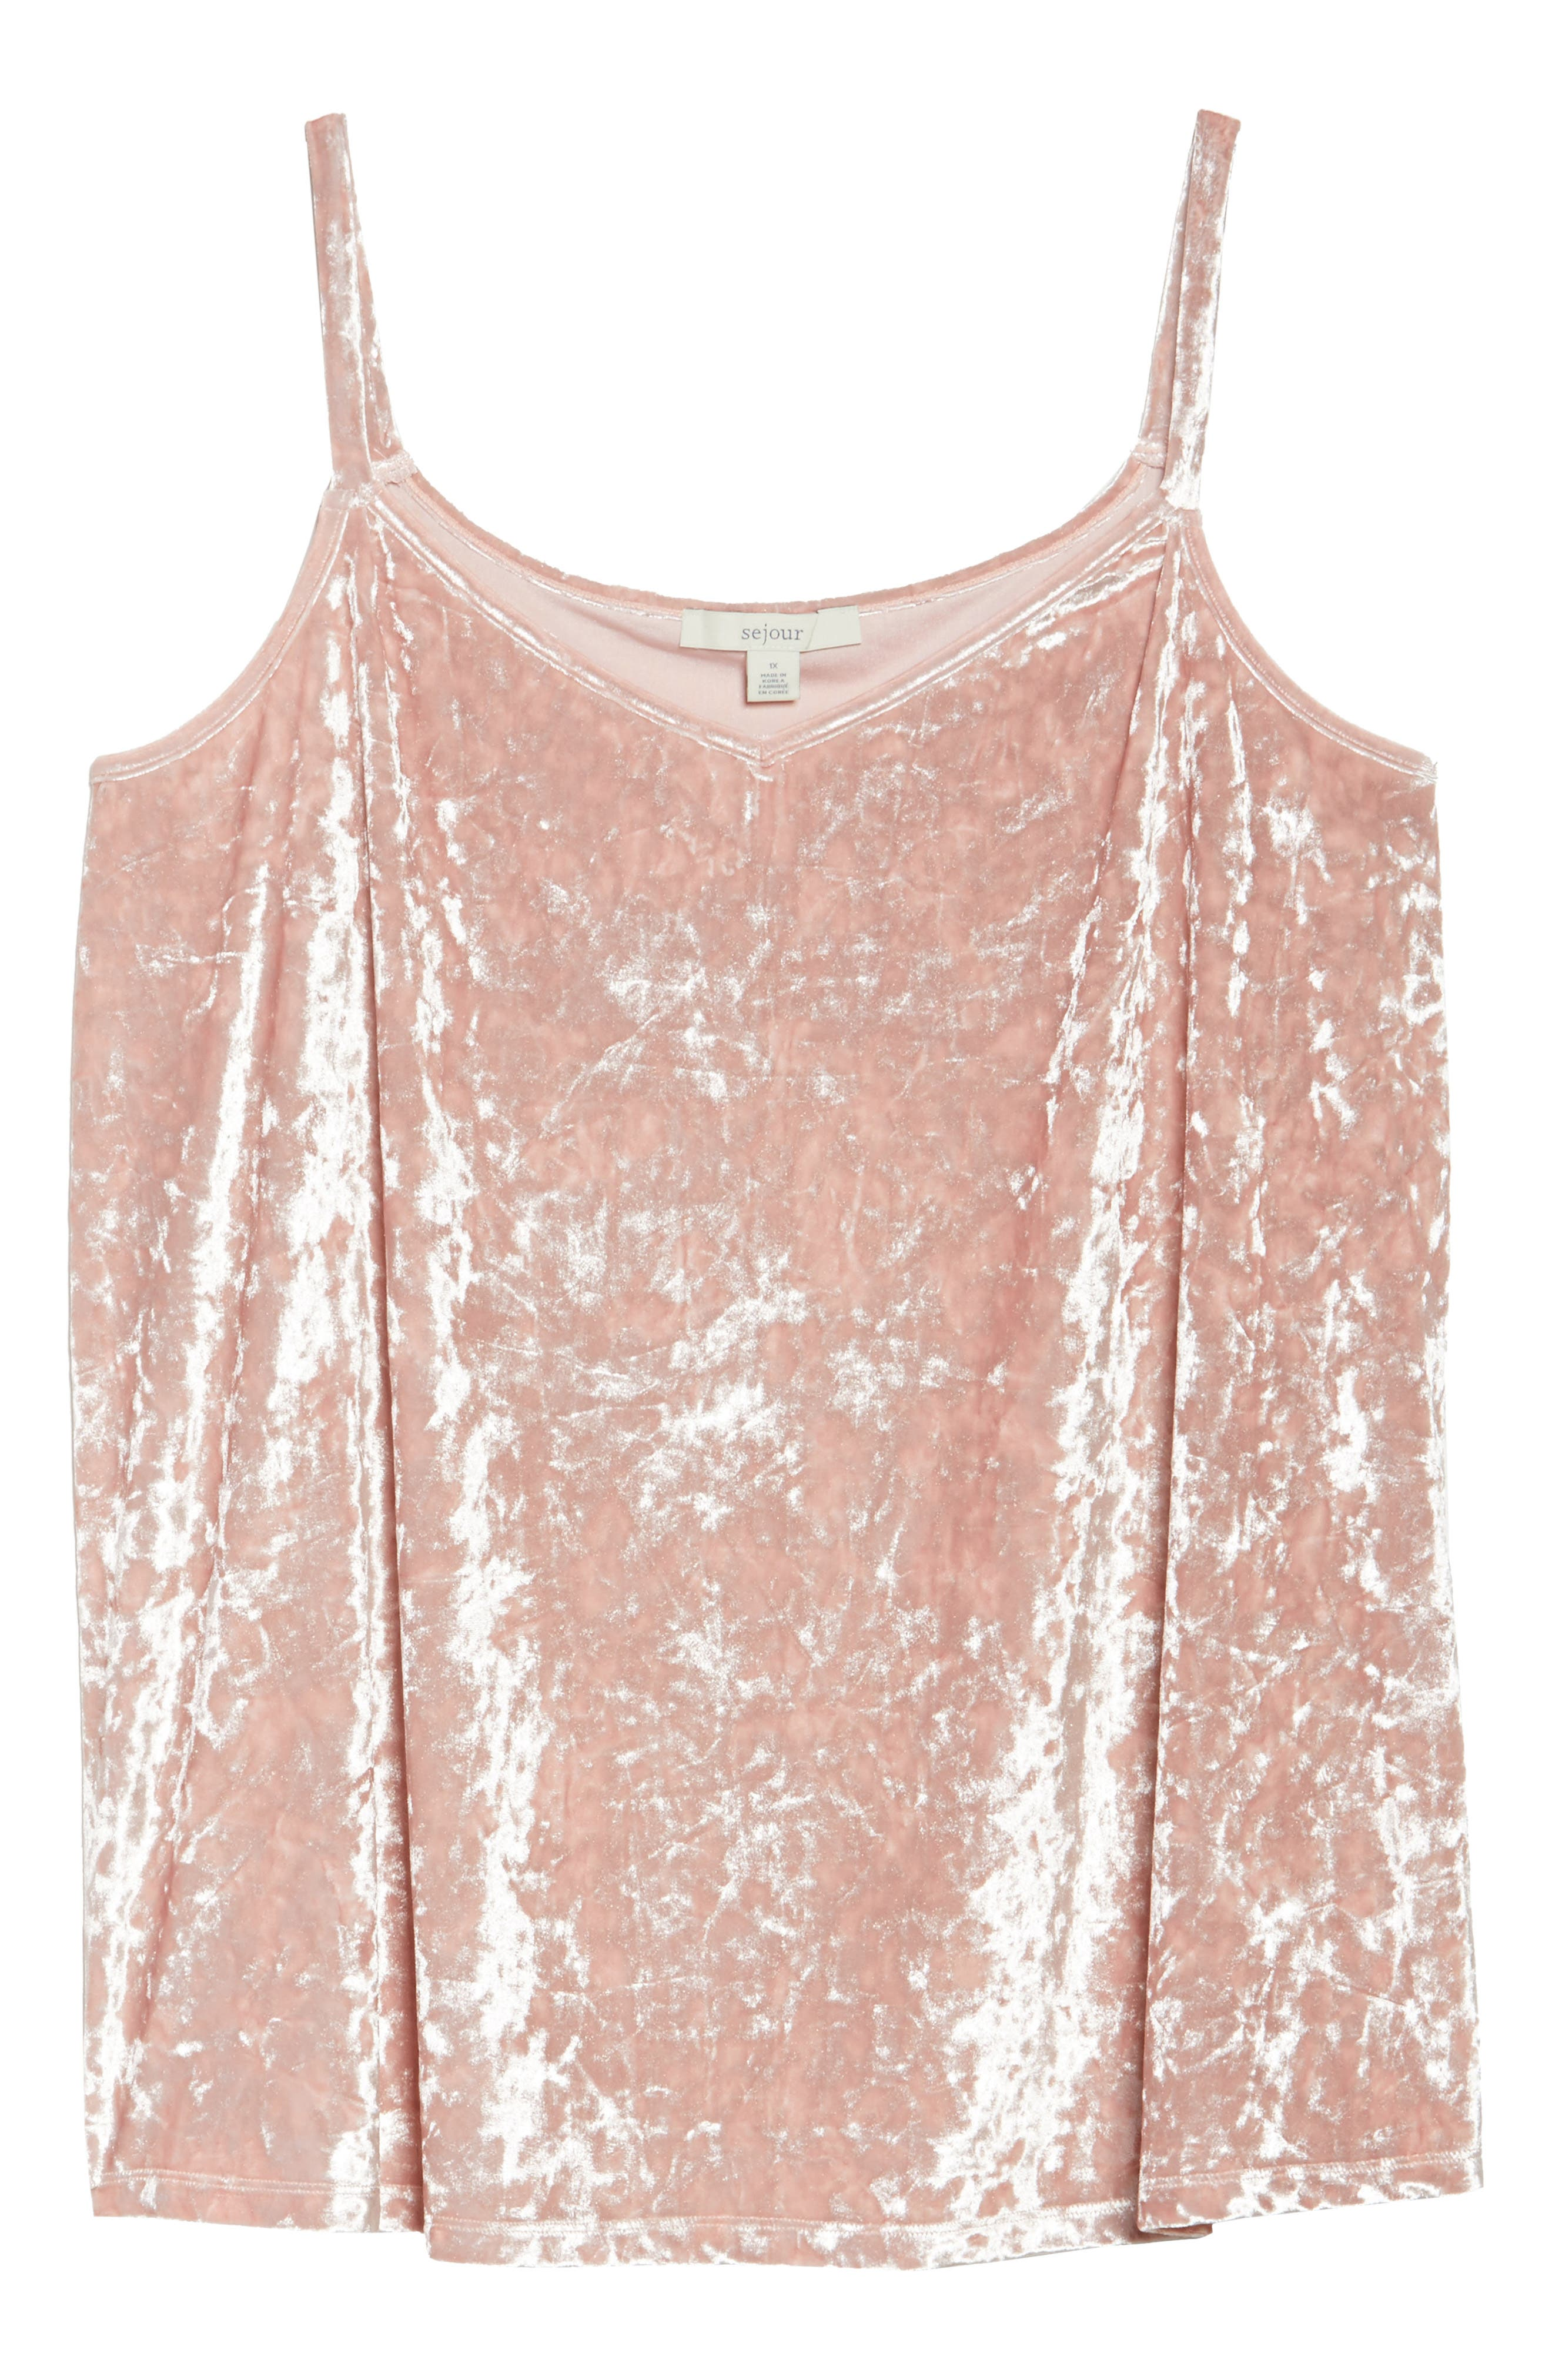 Velour Camisole,                             Alternate thumbnail 6, color,                             Pink Tan